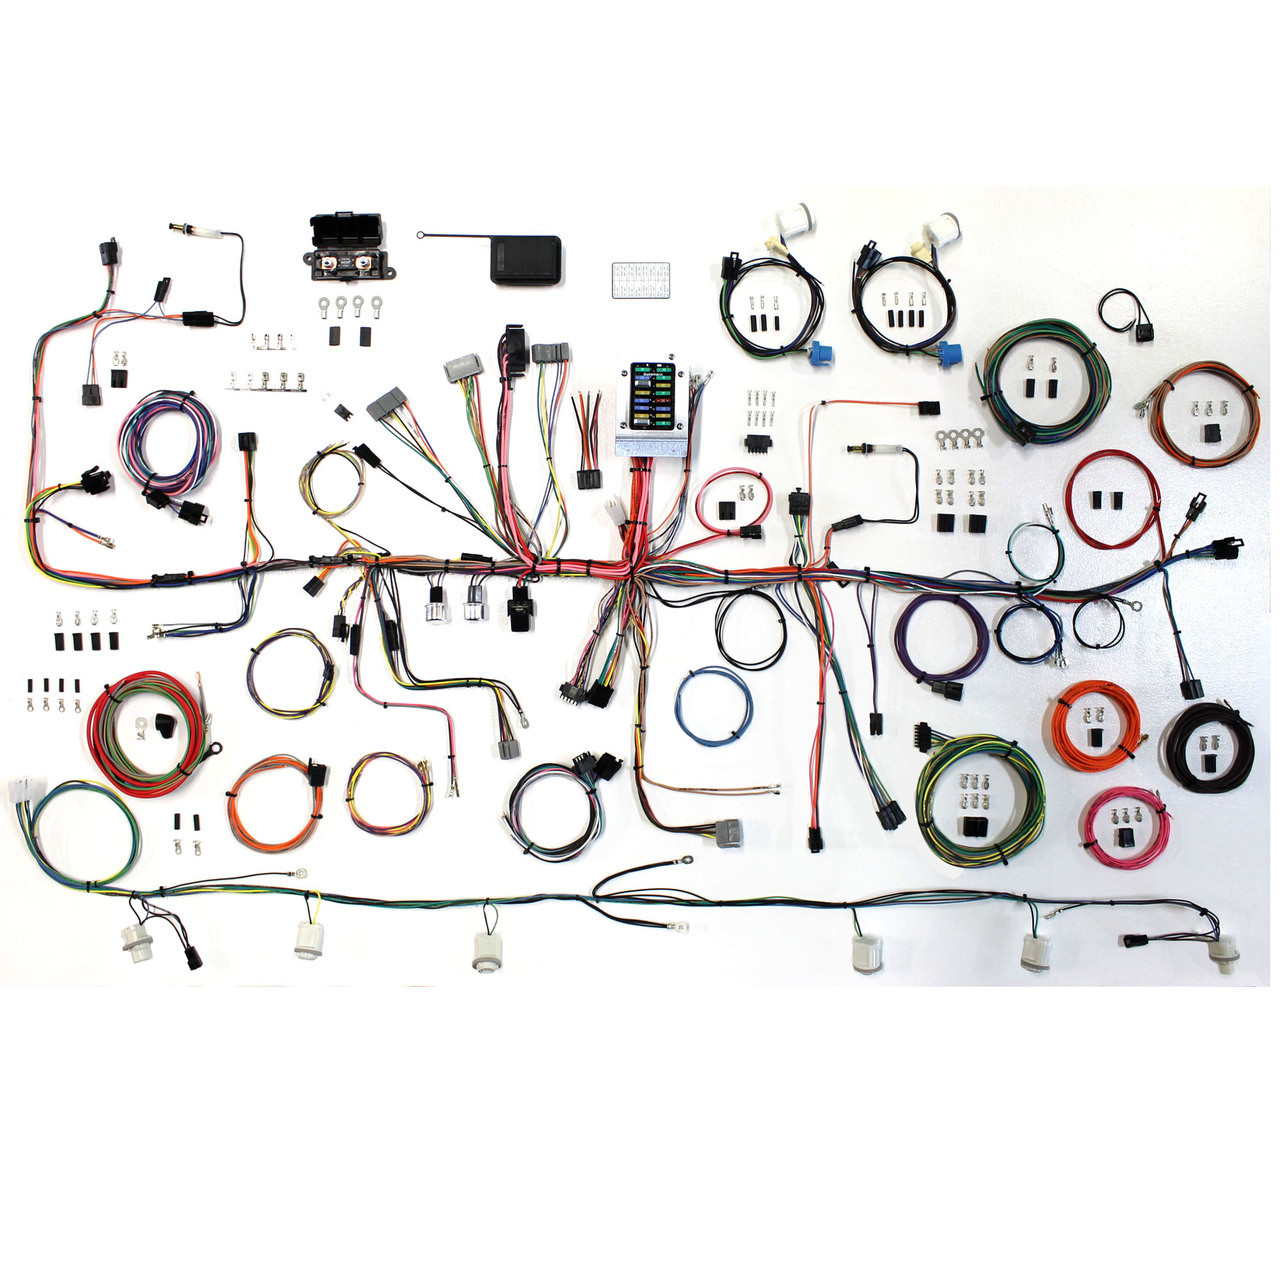 small resolution of american autowire 1987 1989 ford mustang fox body classic update complete wiring kit